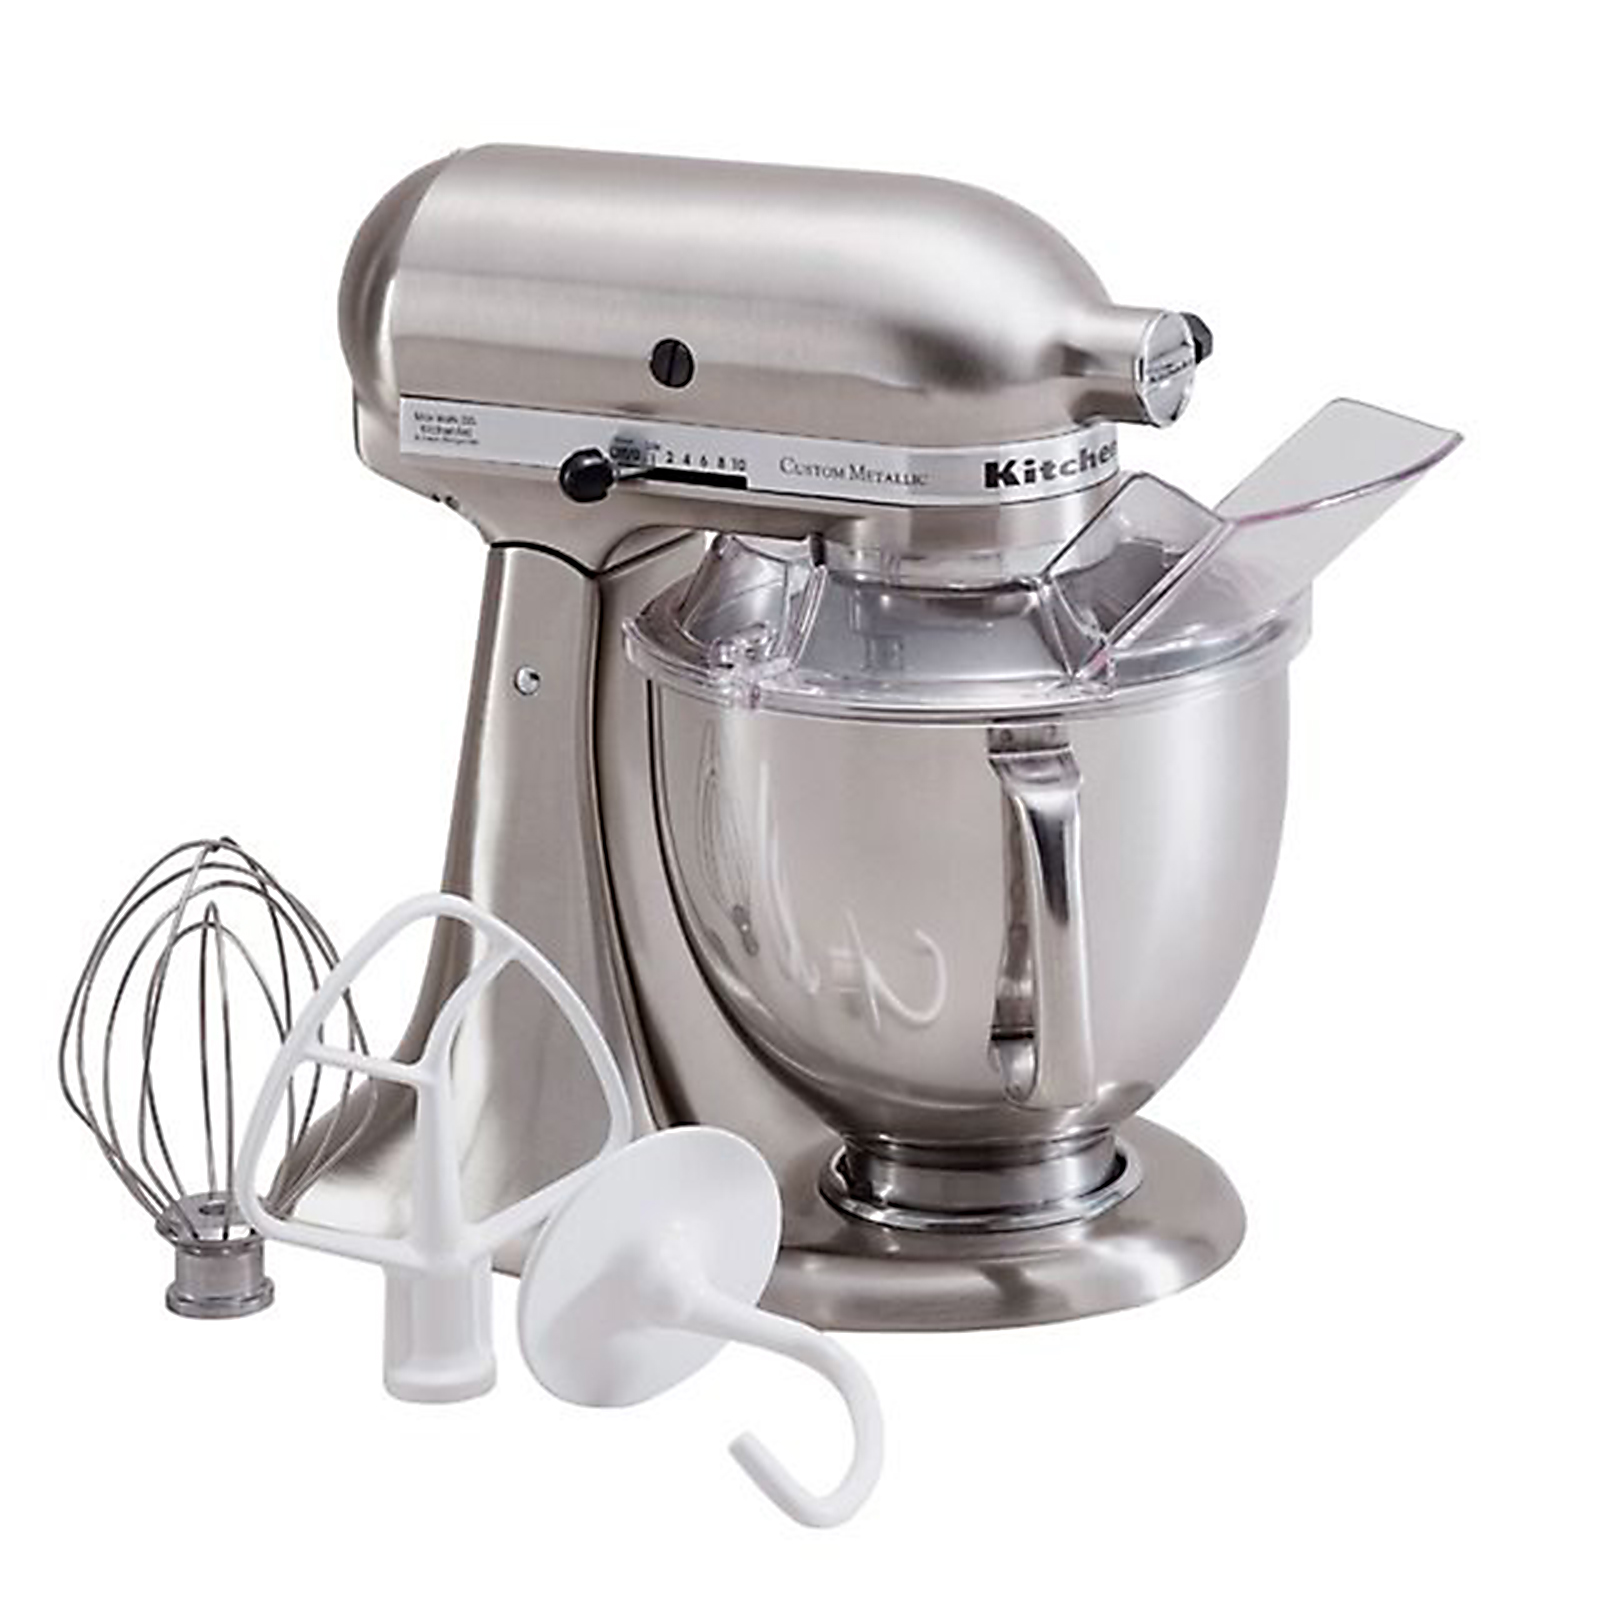 KitchenAid  Custom Metallic Series 5 Quart Stand Mixer - Brushed Nickel